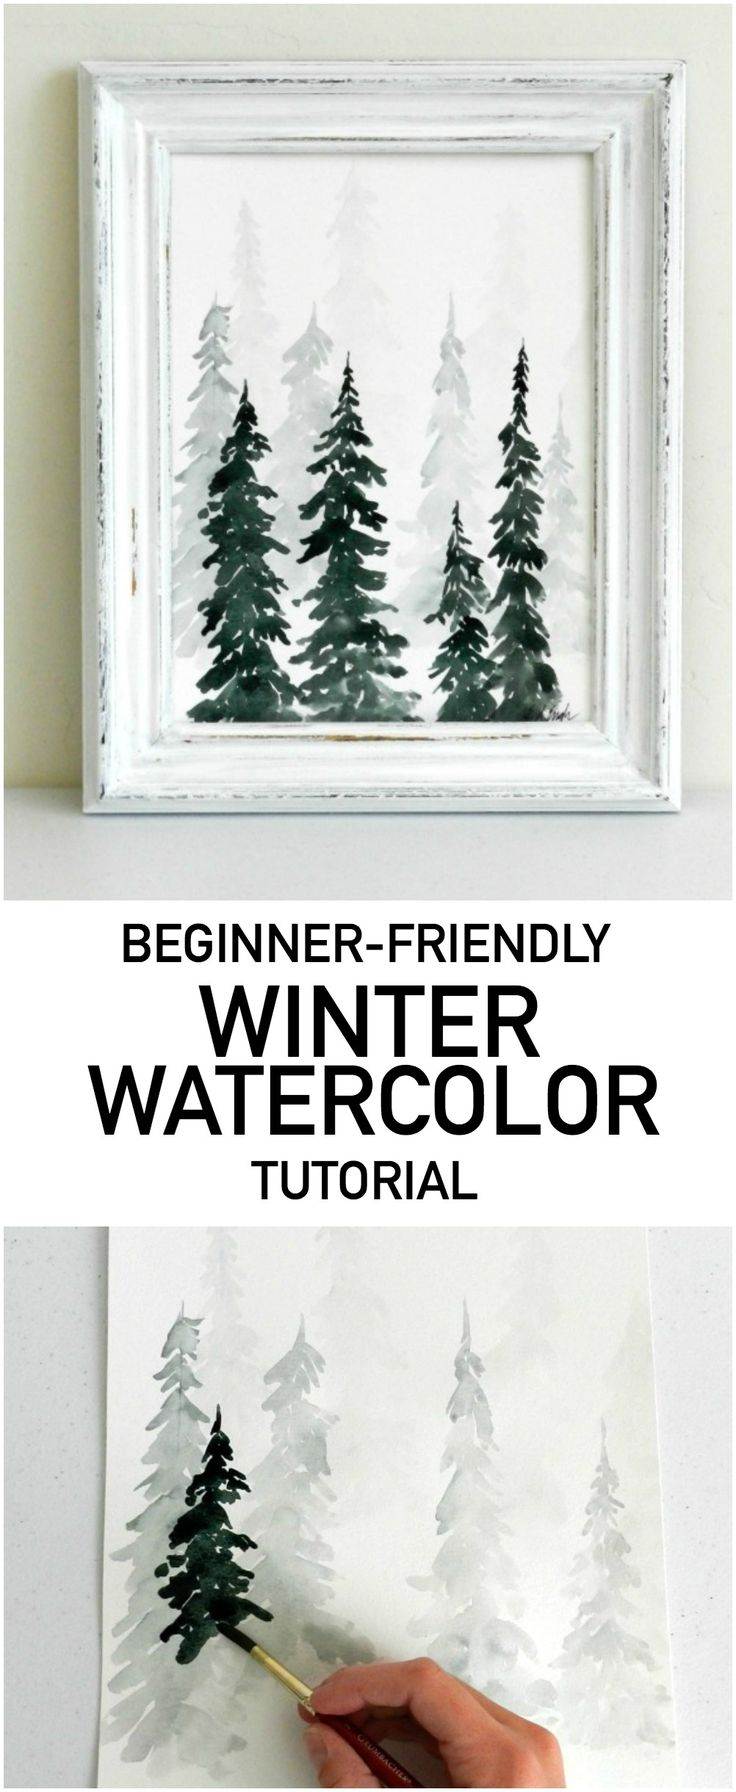 Frame a few of these watercolor forest paintings for fast, classy Christmas decorations. Learn how from blogger Elise Engh.